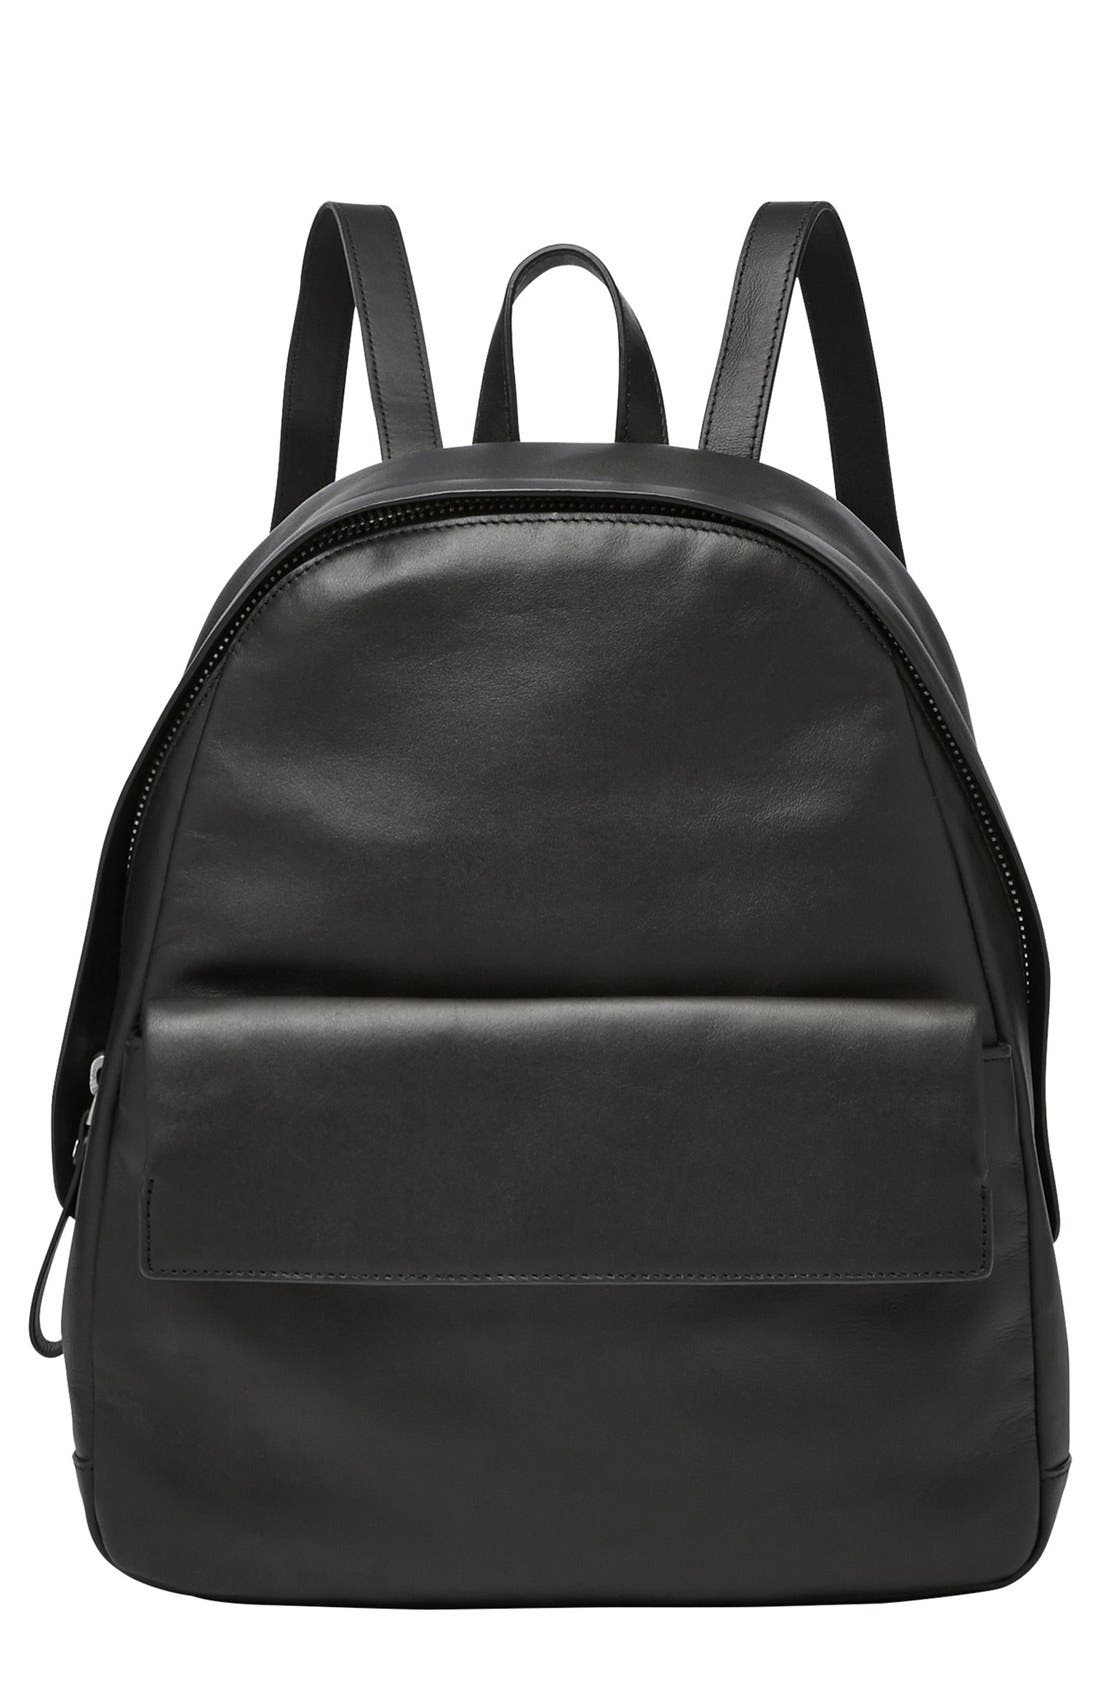 'Aften' Leather Backpack,                             Main thumbnail 1, color,                             001